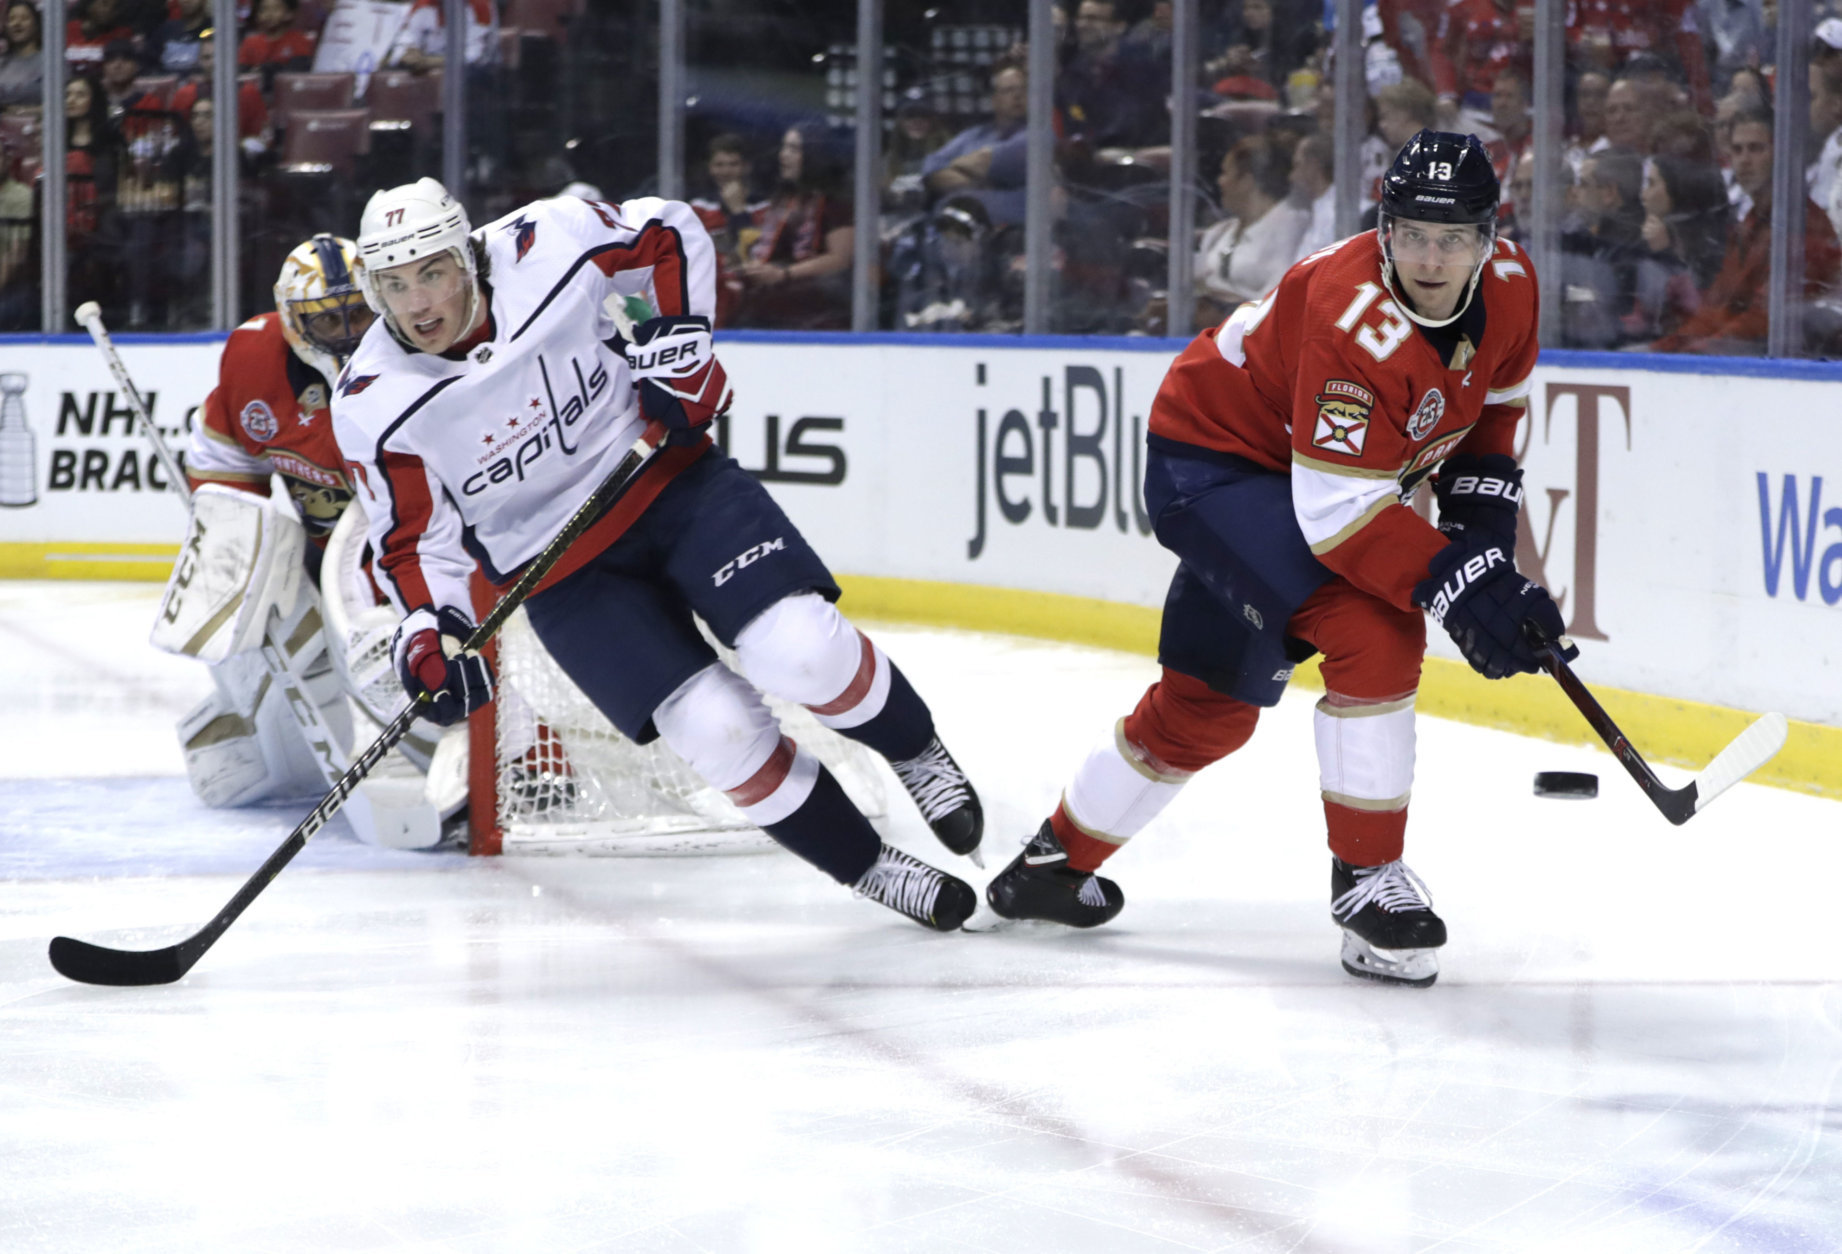 Florida Panthers defenseman Mark Pysyk (13) skates with the puck as Washington Capitals right wing T.J. Oshie (77) defends during the first period of an NHL hockey game, Monday, April 1, 2019, in Sunrise, Fla. (AP Photo/Lynne Sladky)